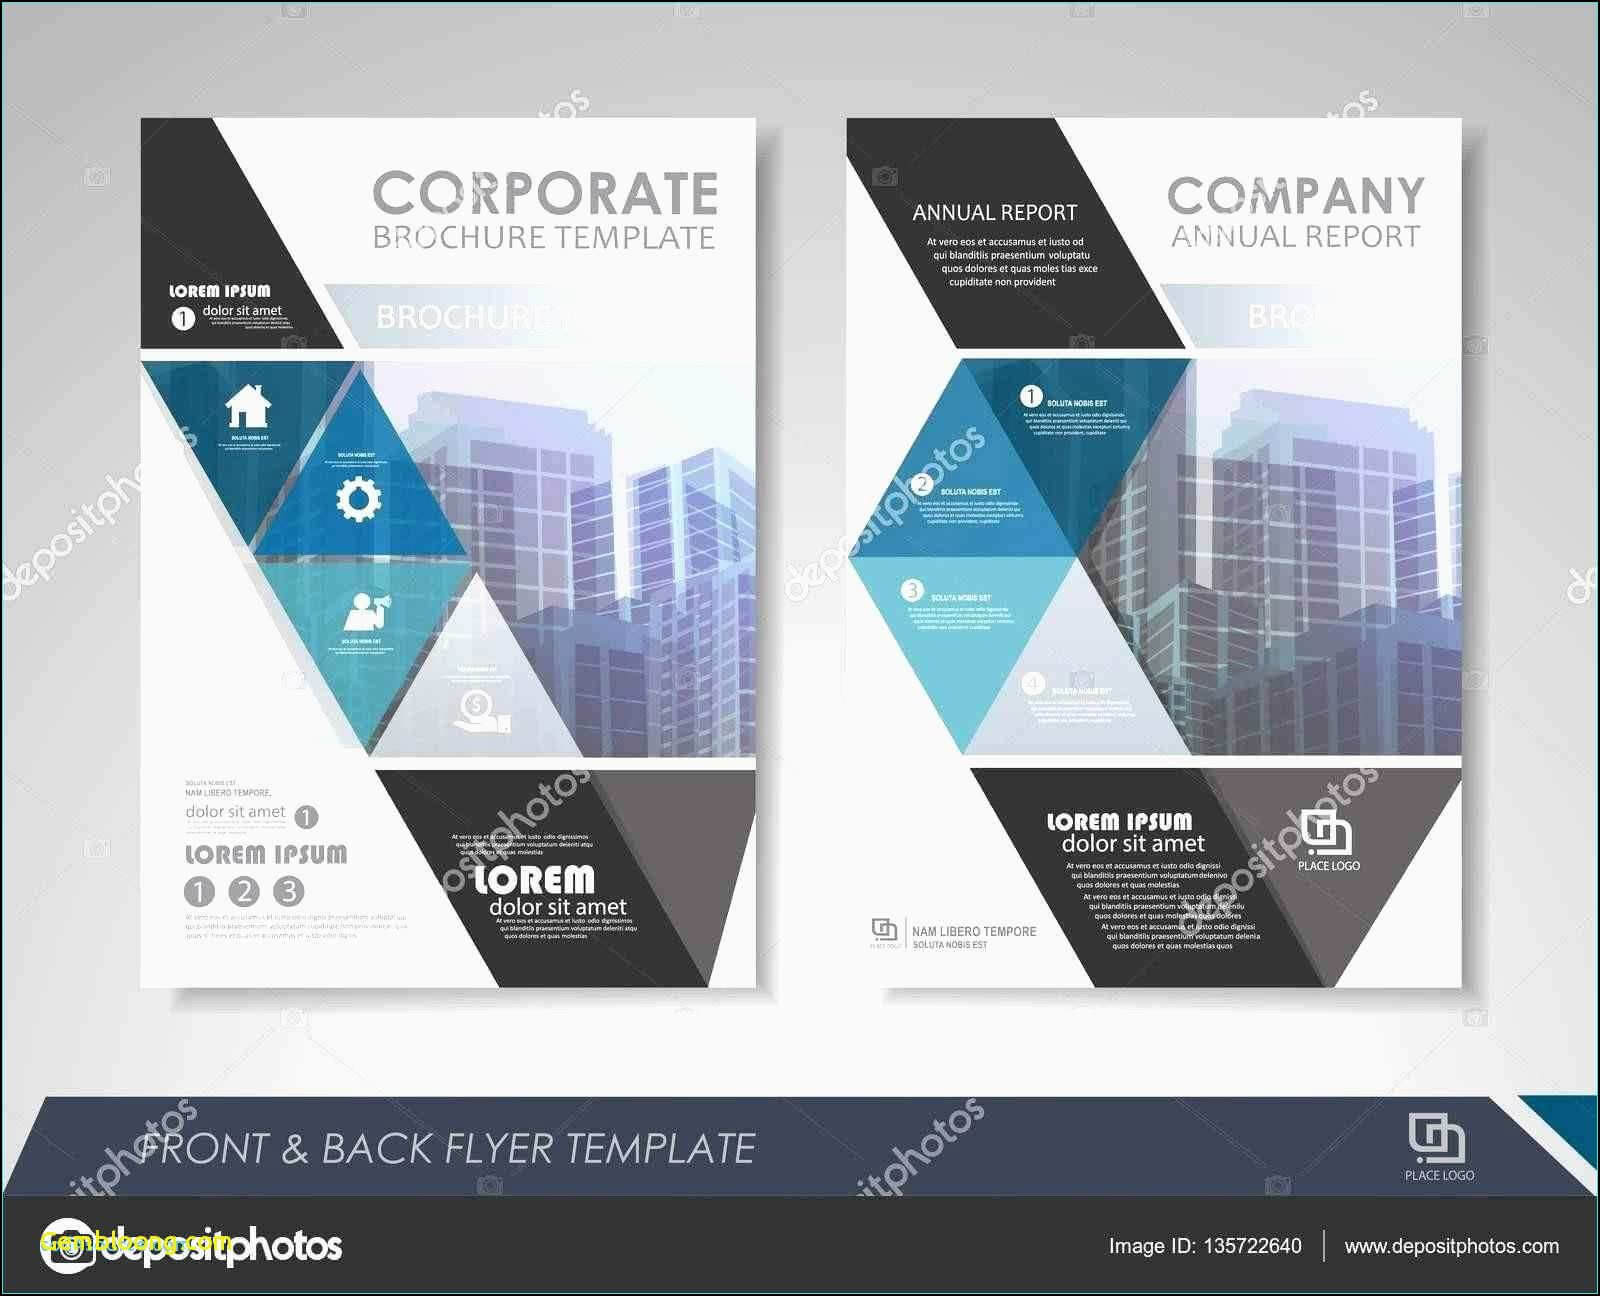 Unique 28 A4 Tri Fold Brochure Template Psd Free Download with 3 Fold Brochure Template Psd Free Download